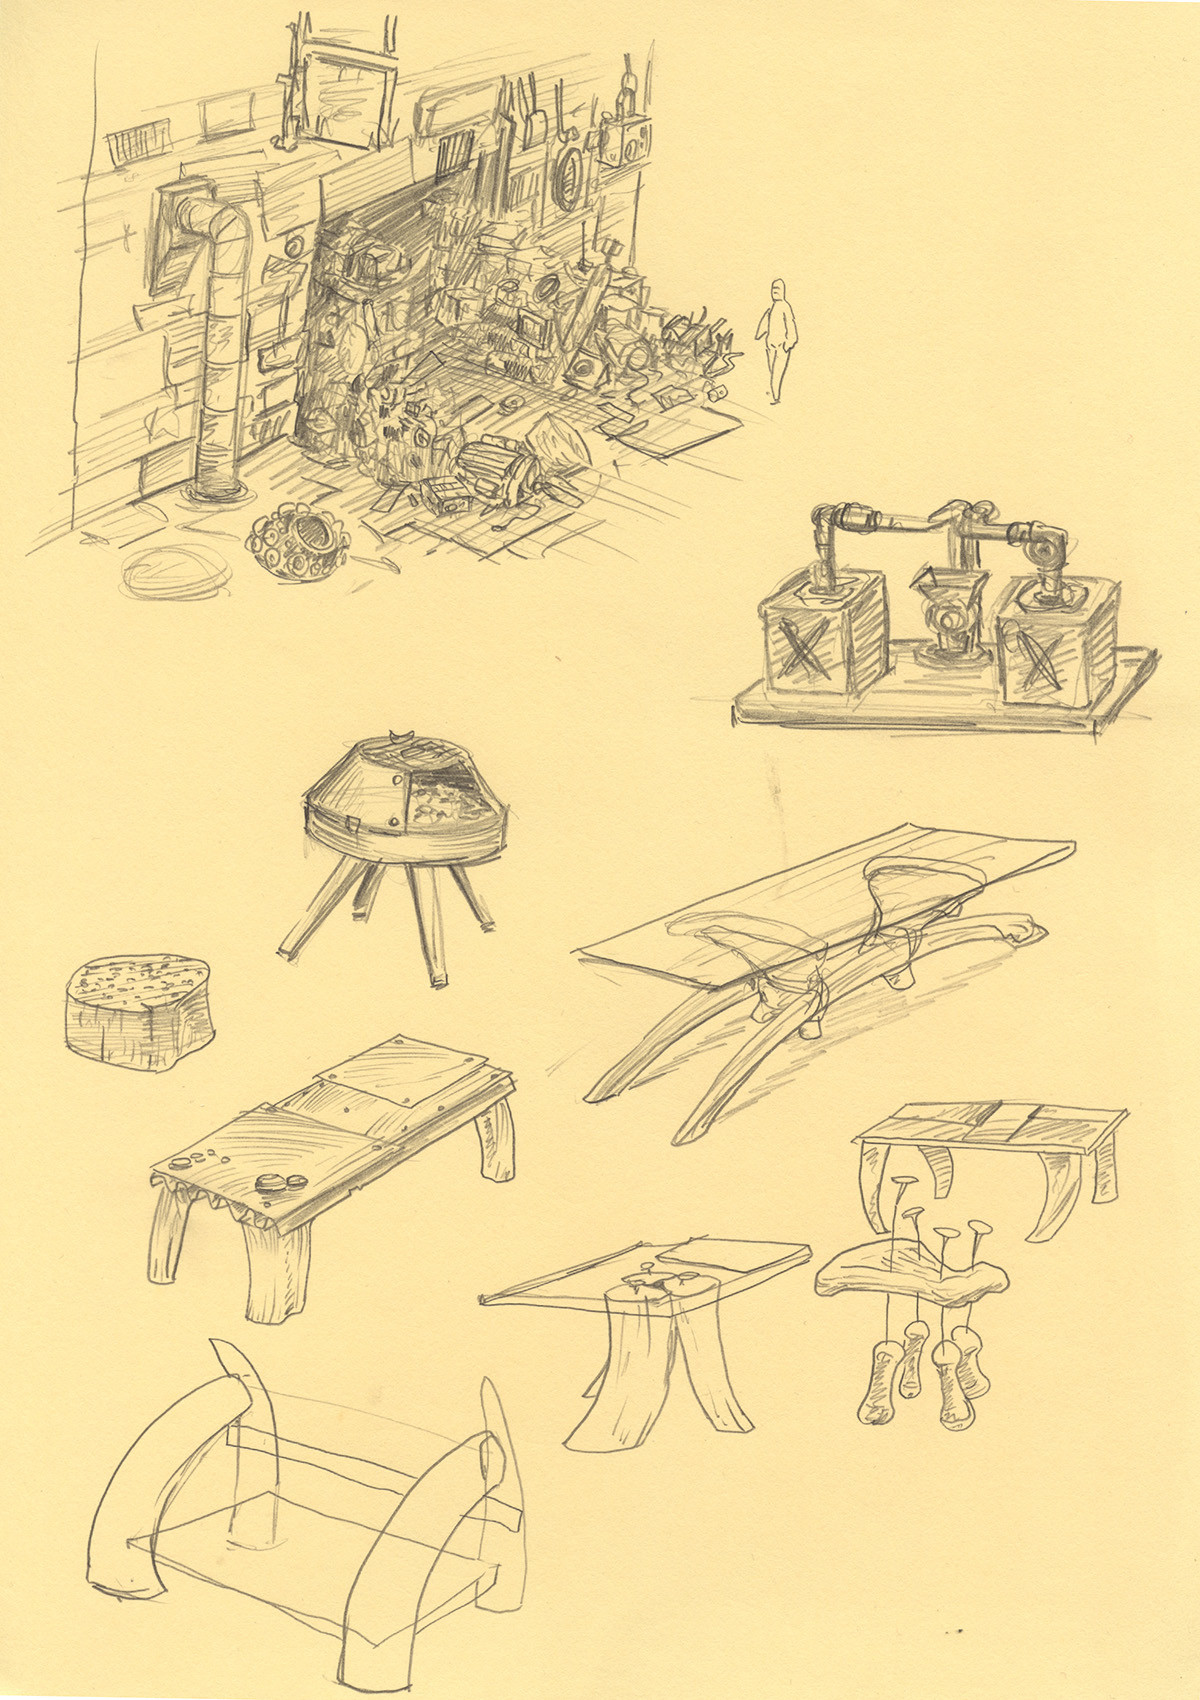 Concepts of furniture made of bones and an early design for the scrap-metal dealer shop